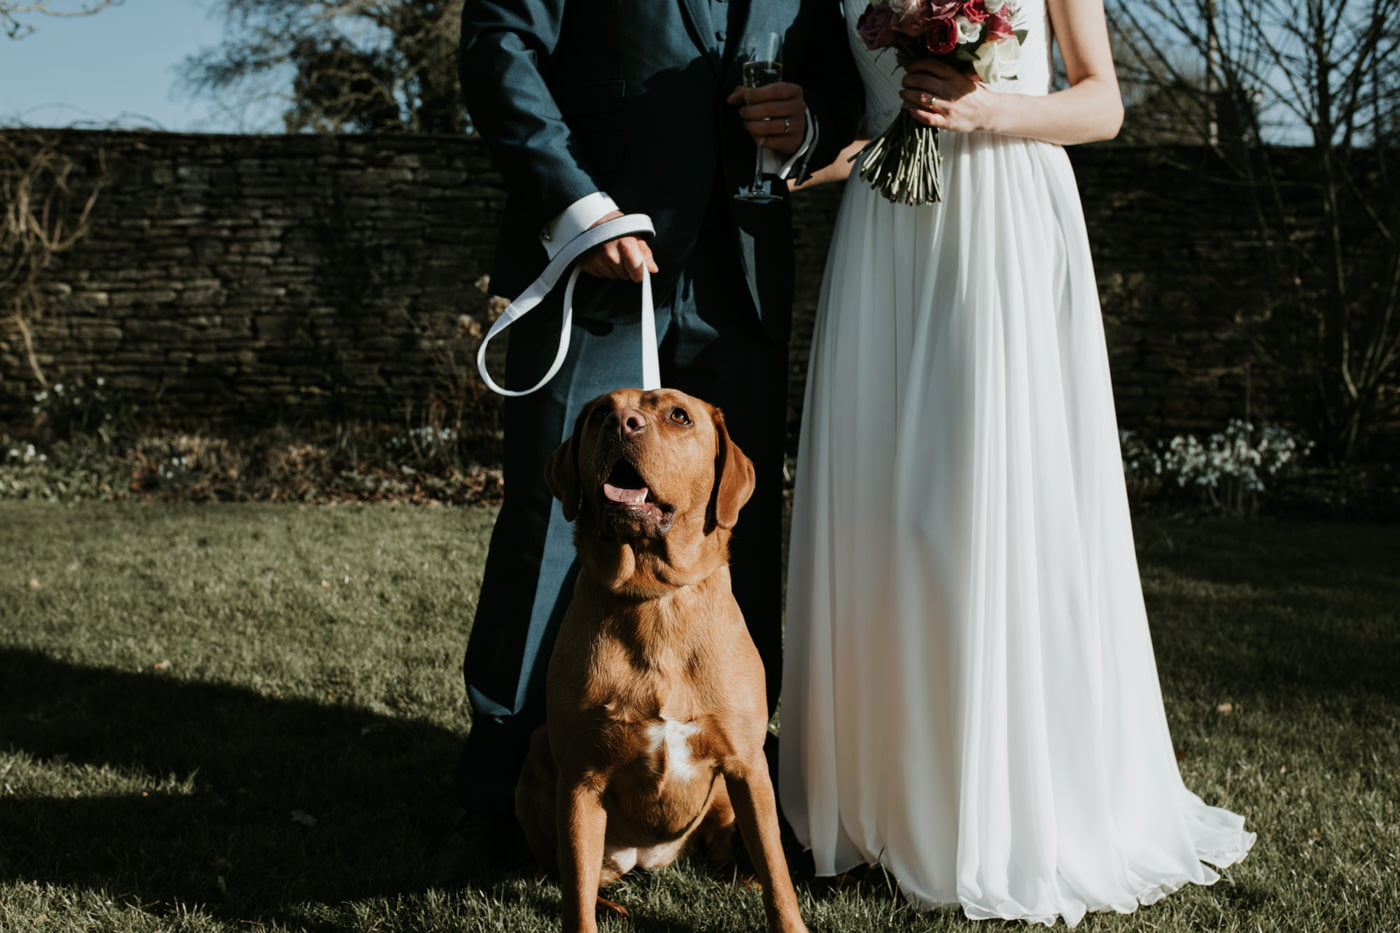 Ruth and Ben, Winkworth Farm, Wiltshire 34